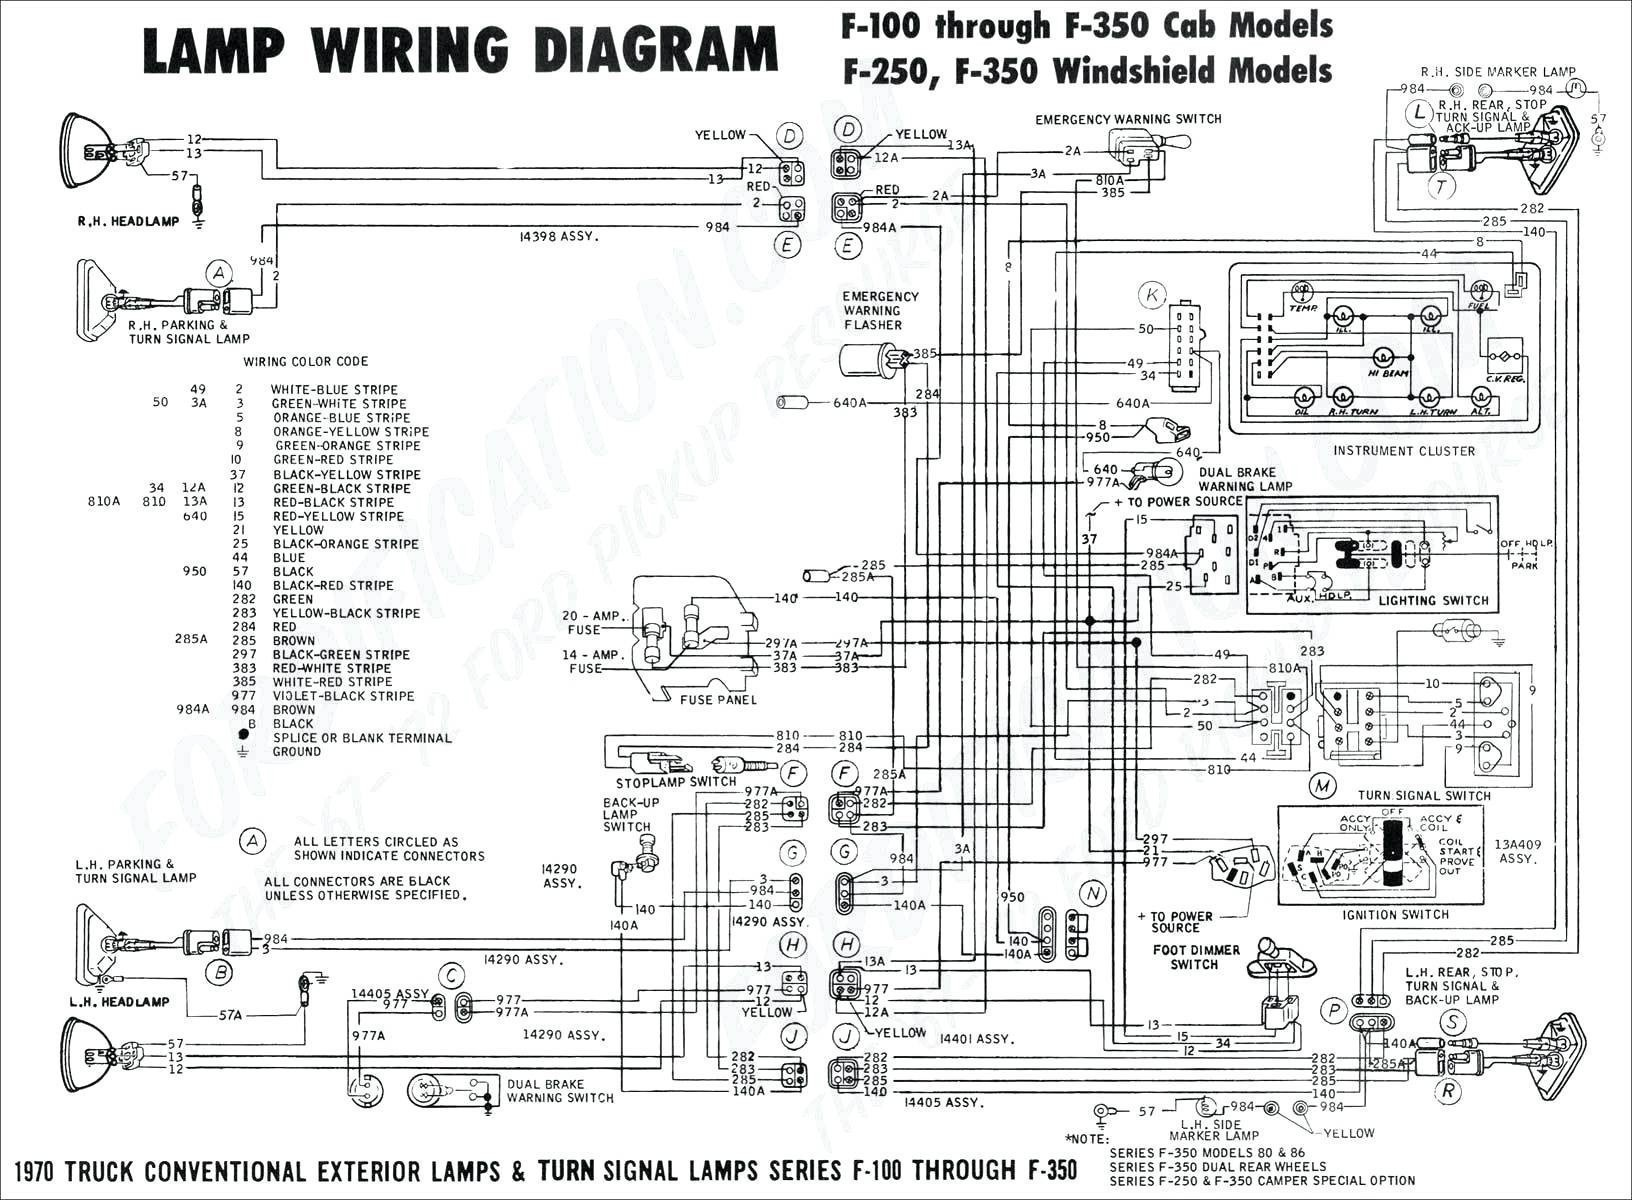 International Truck Fuse Panel Diagram 1991 Plymouth Acclaim Fuse Box Diagram Of International Truck Fuse Panel Diagram Mack Parts Fuse Diagram Wiring Diagram Paper